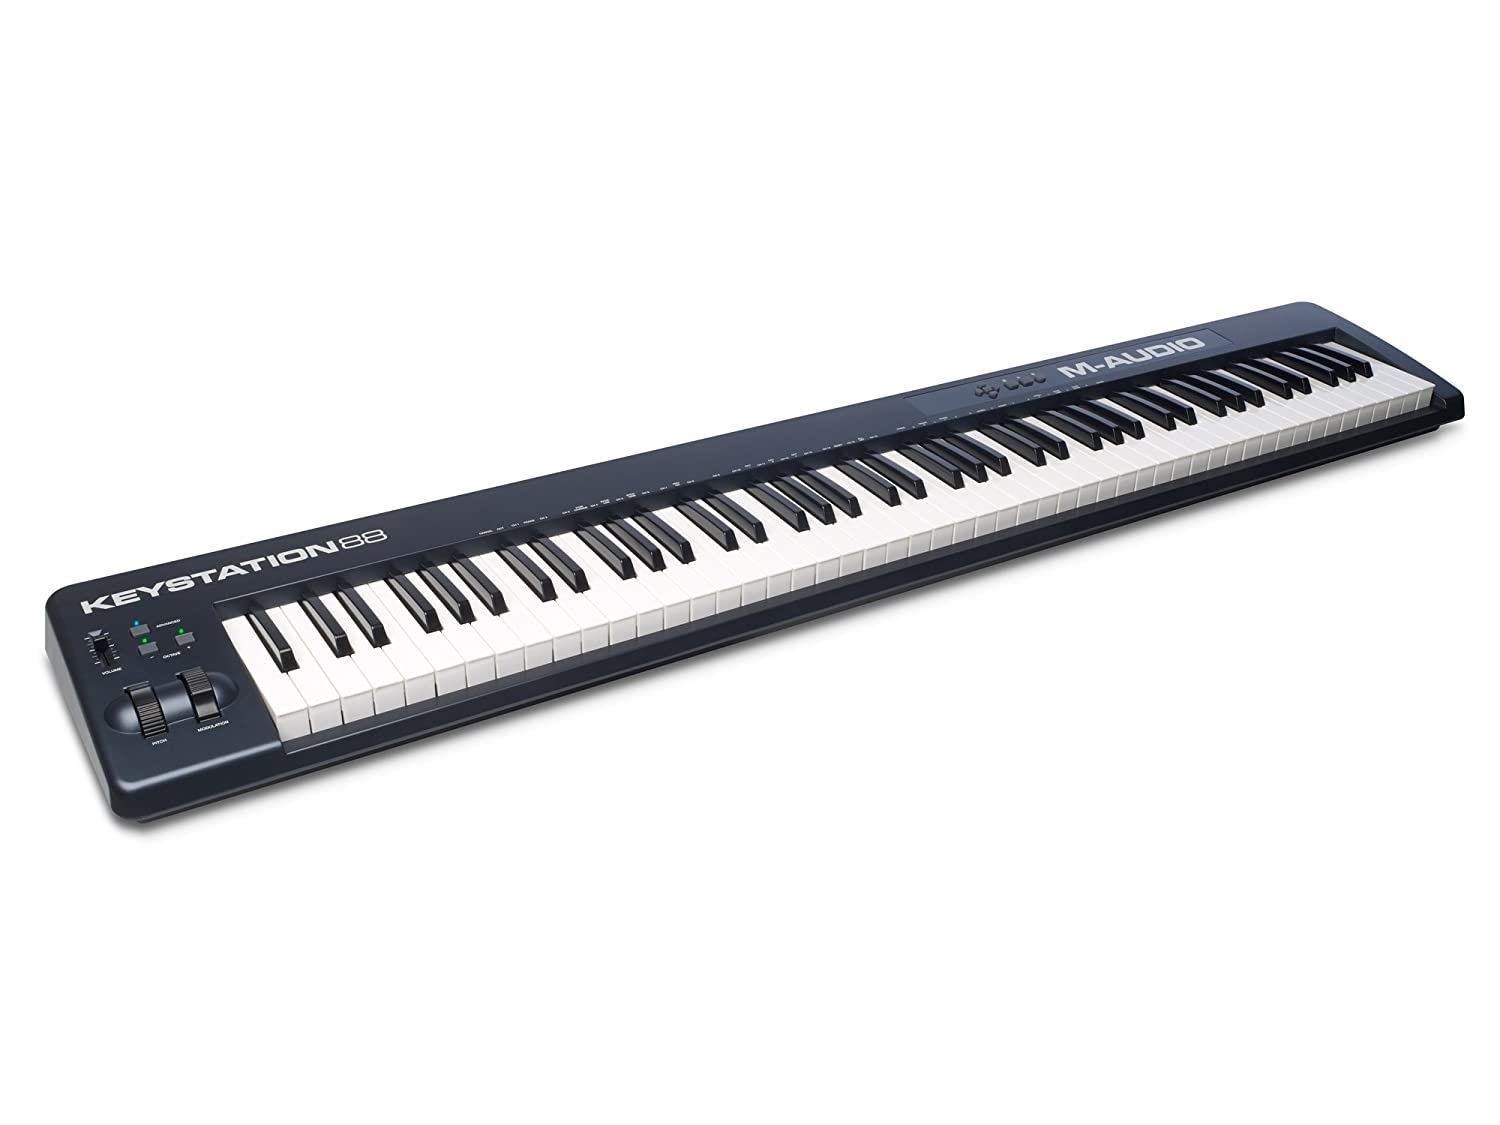 Top 10 Best MIDI Keyboard Under $200 Should You Know 6